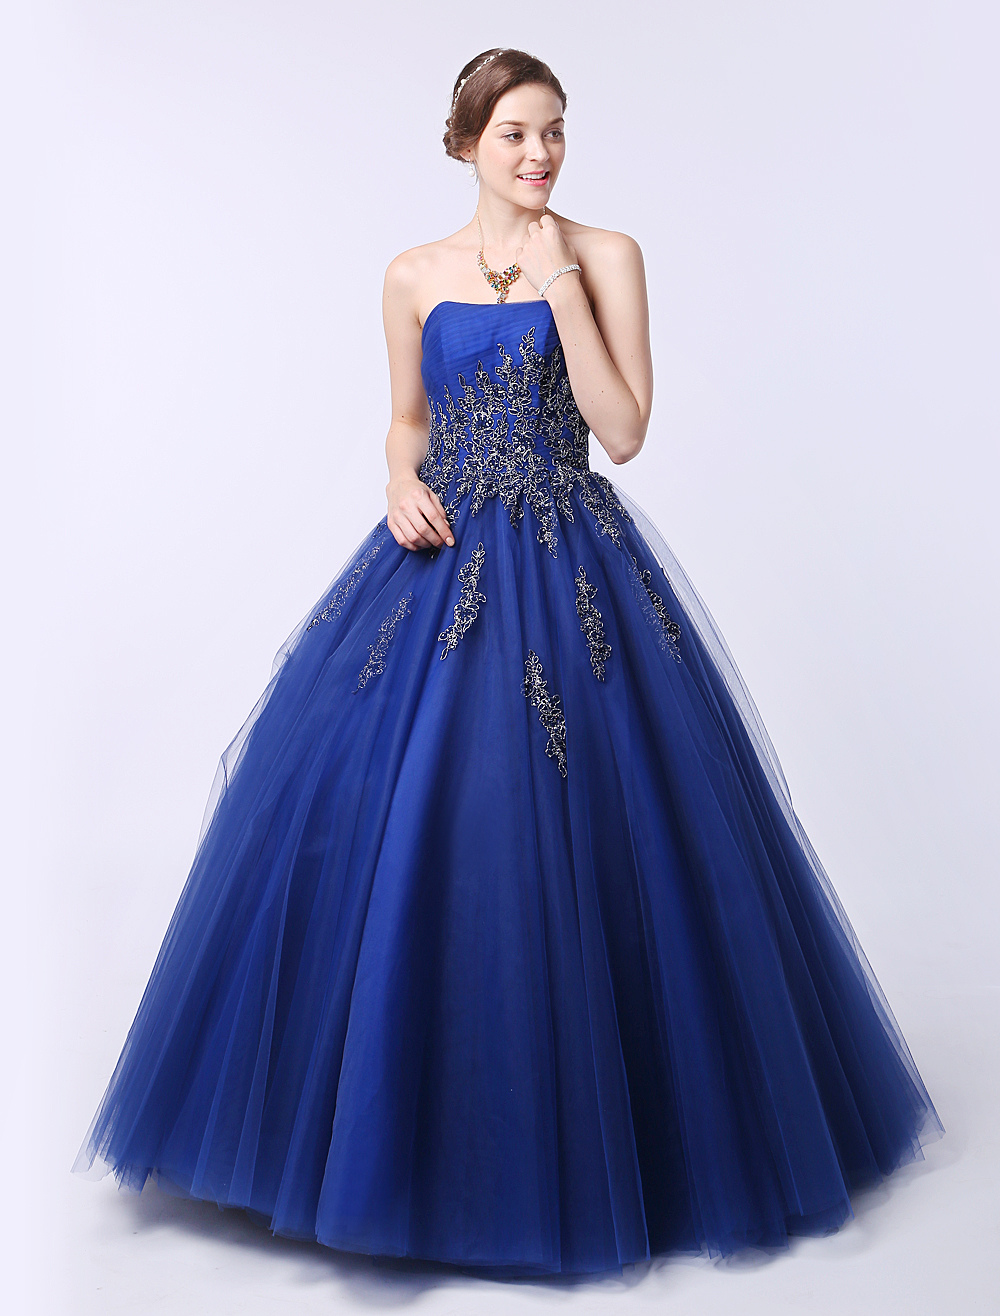 Buy Blue Wedding Dress Lace Applique Beading Sweetheart Strapless Ball Gown Princess Bridal Gown Floor-Length Pageant Dress for $252.89 in Milanoo store